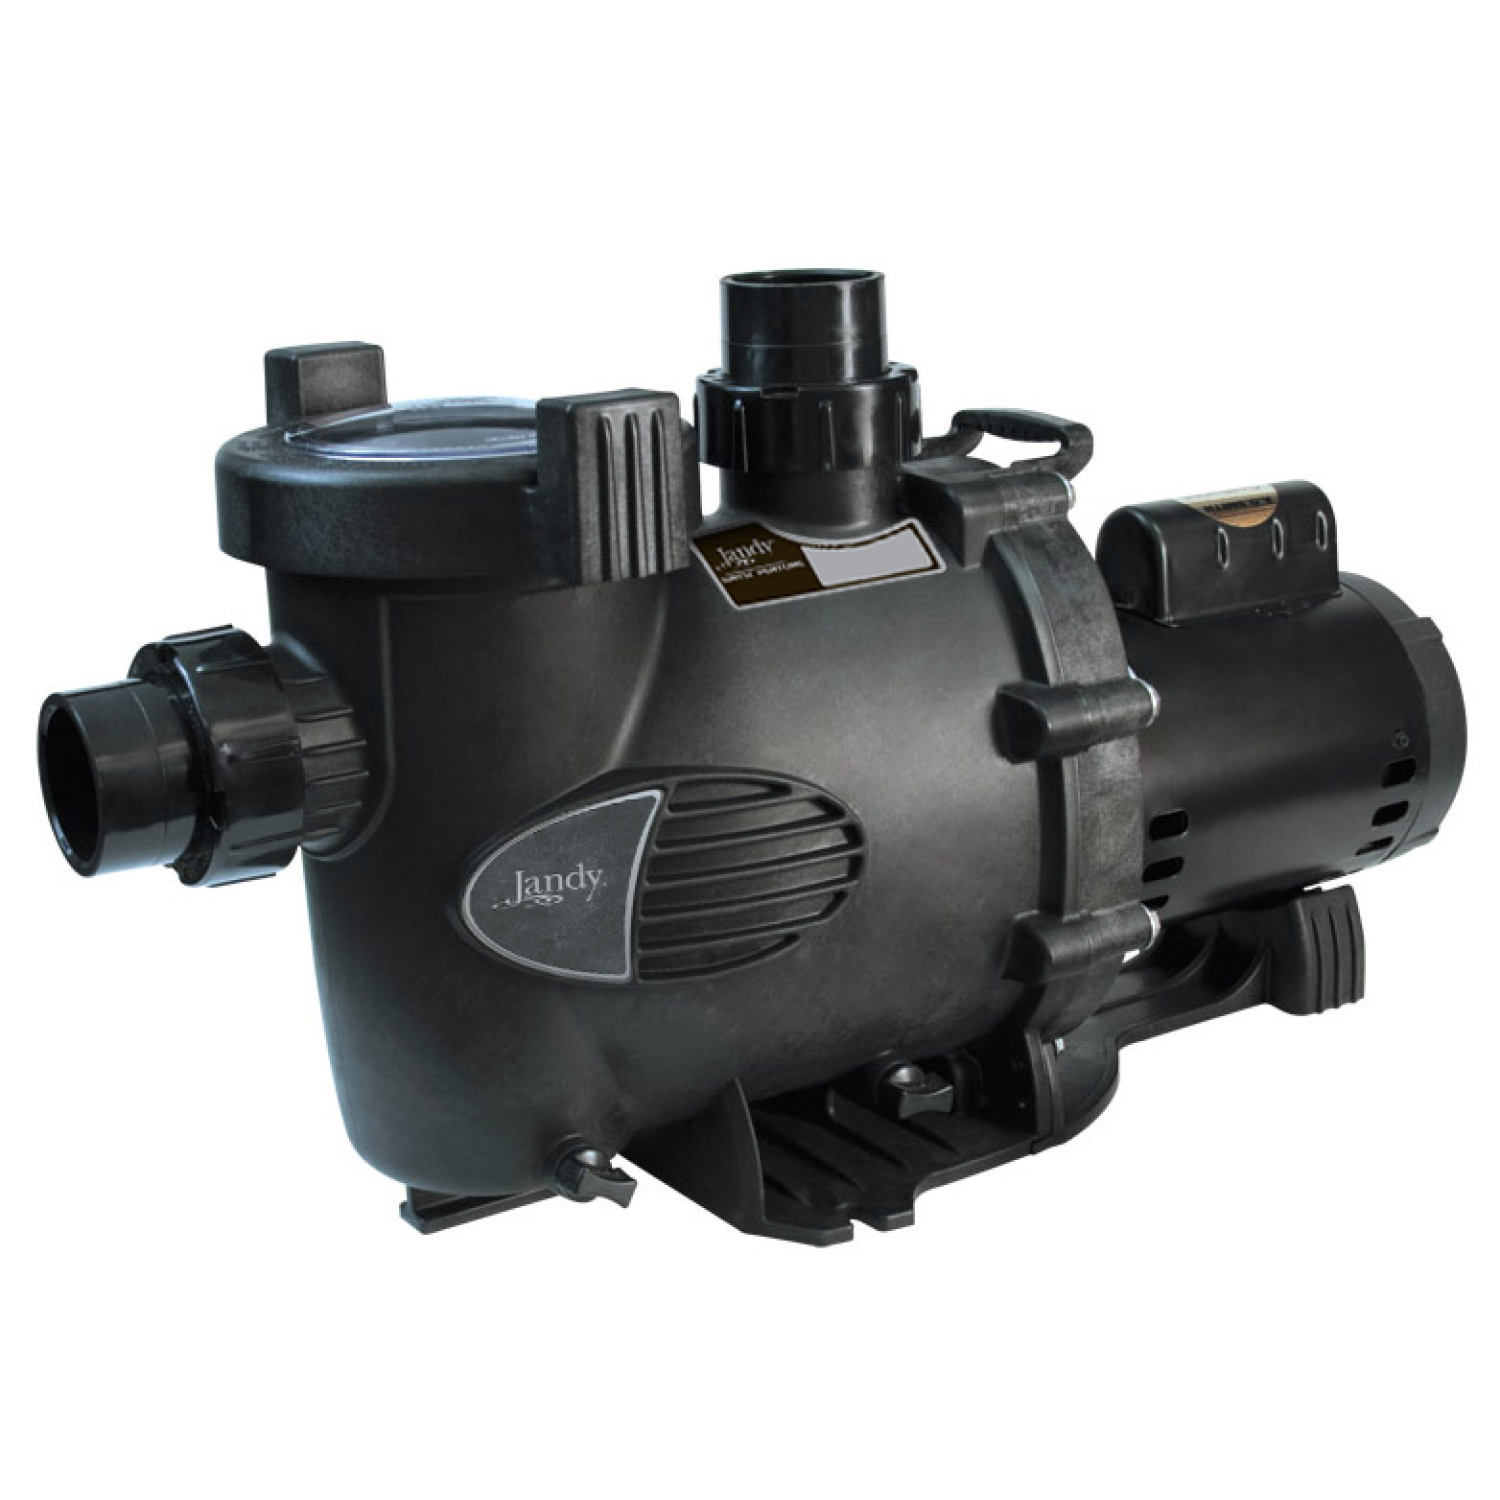 pool pumps variable speed, single & two speed jandy pro series hayward pool pumps jandy pro series waterfeature inground pool pumps